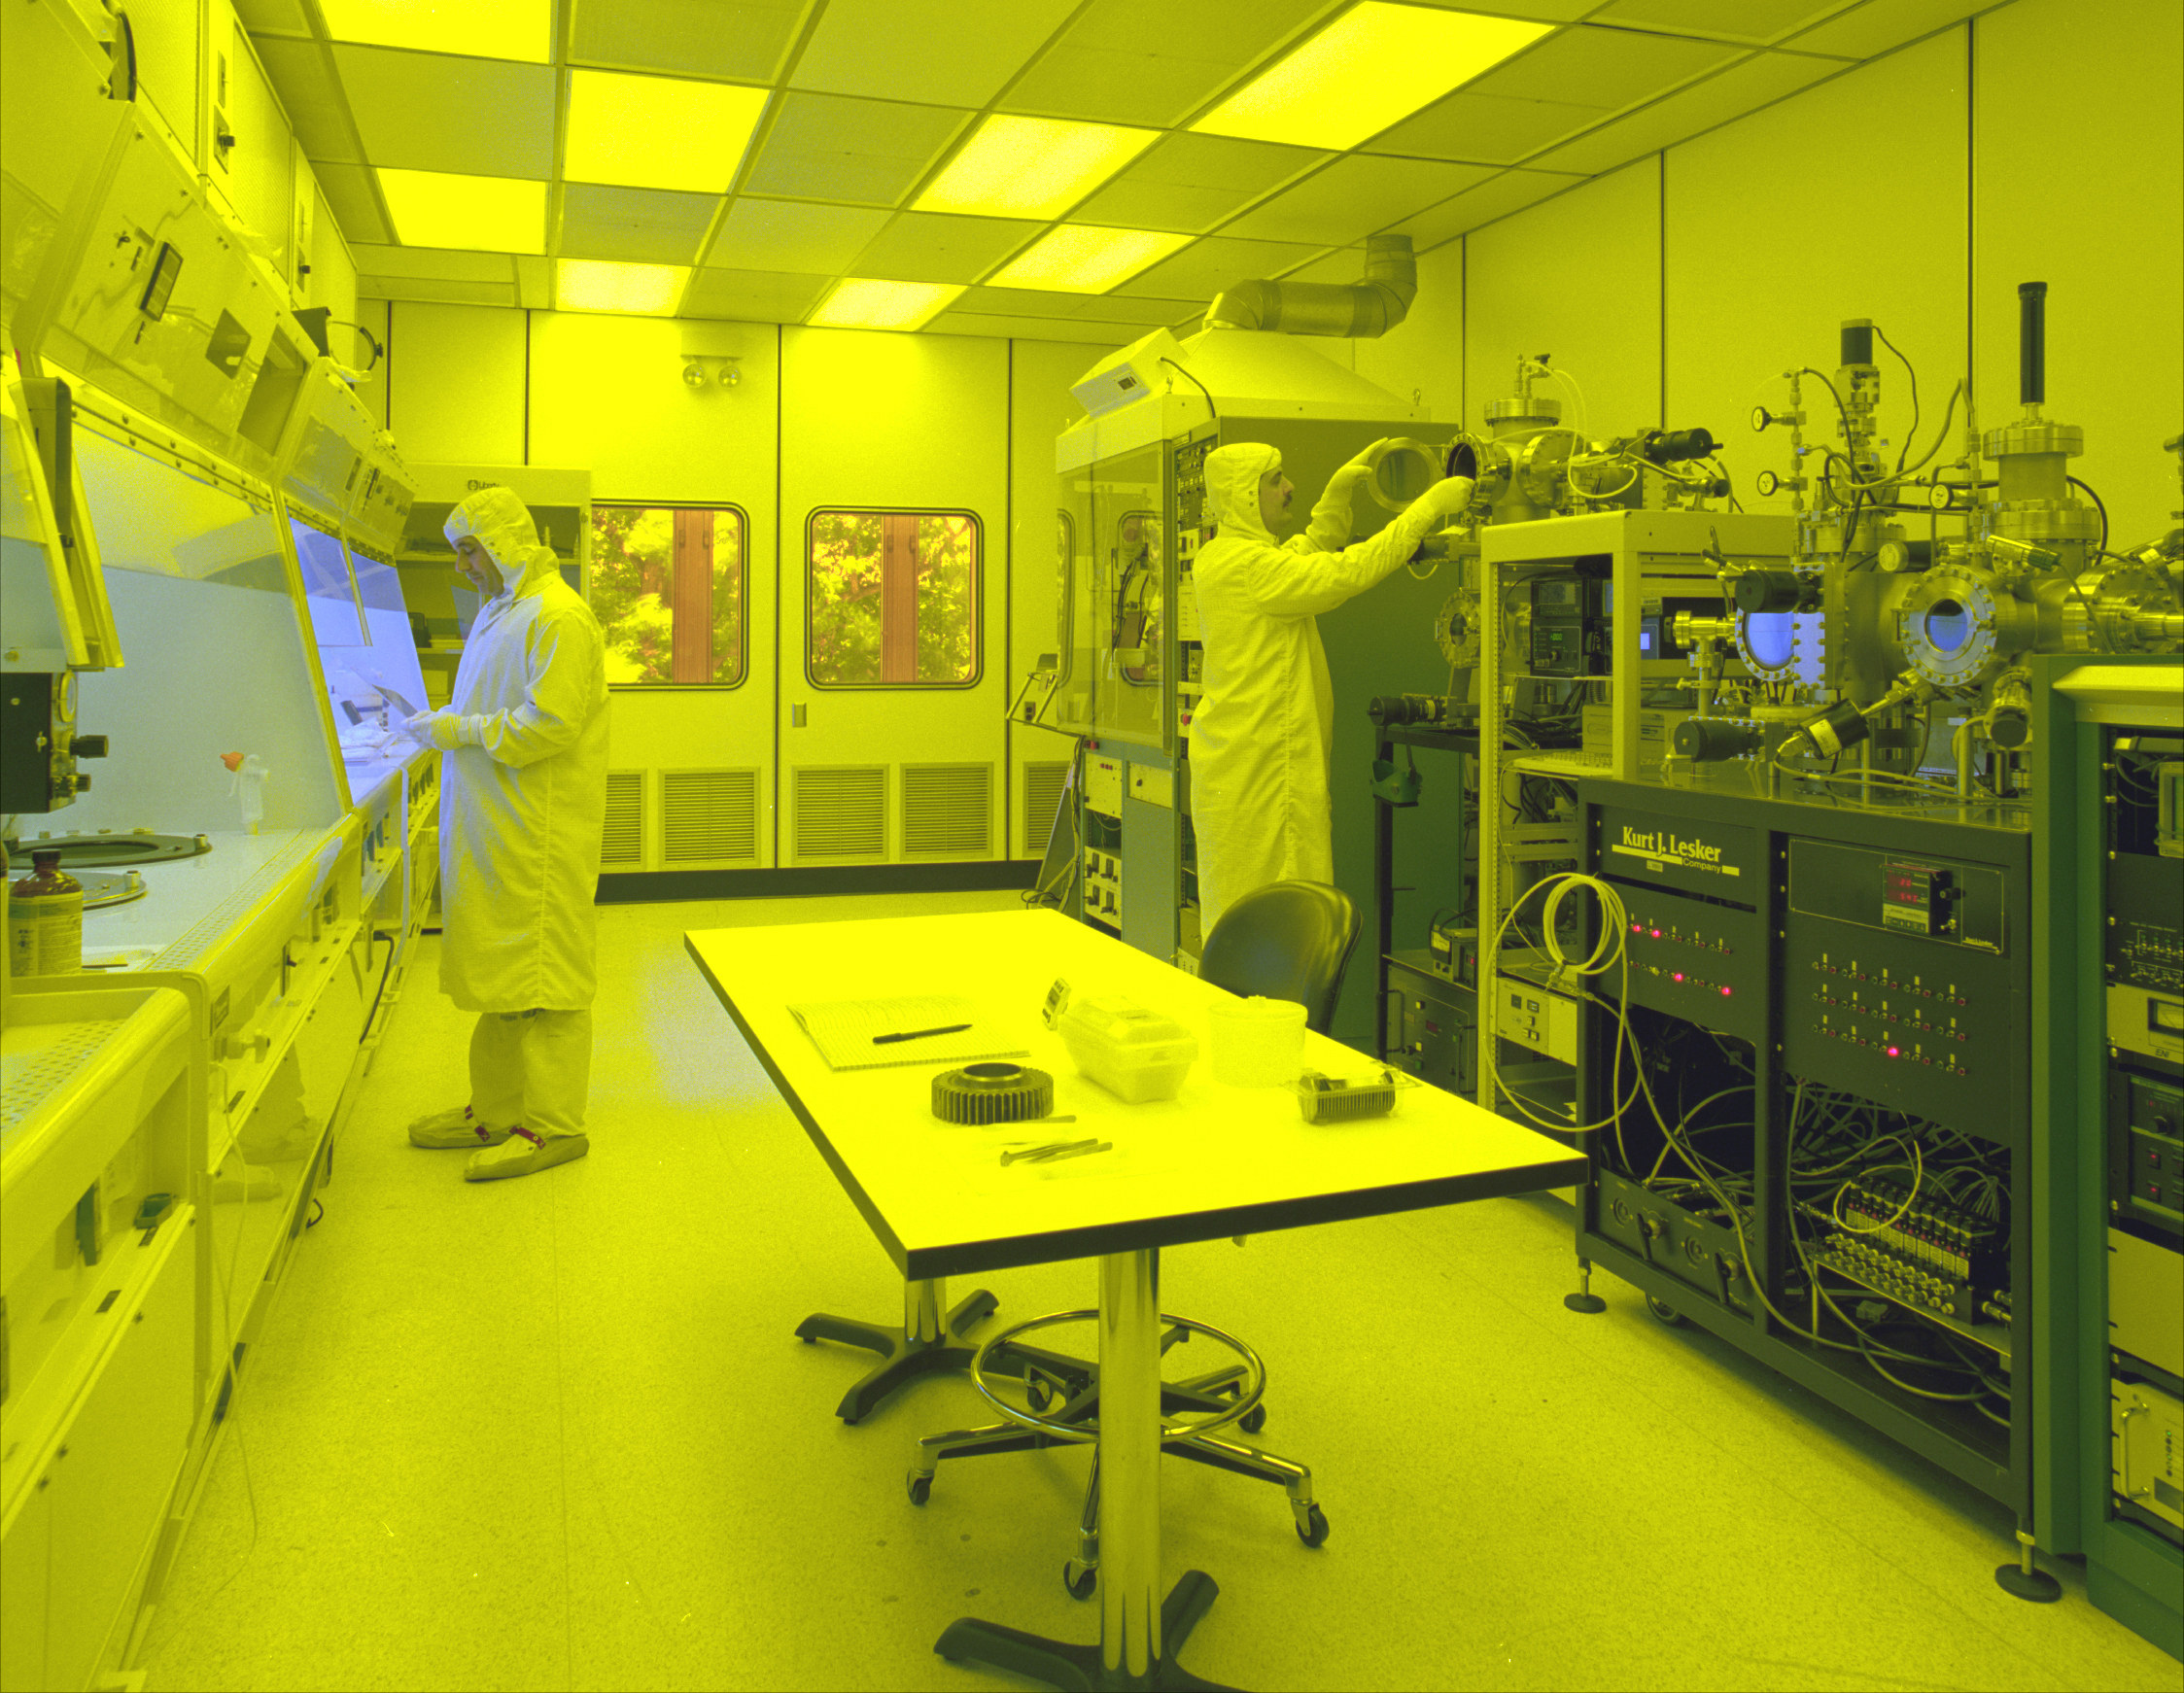 cleanroom is a highly controlled environment